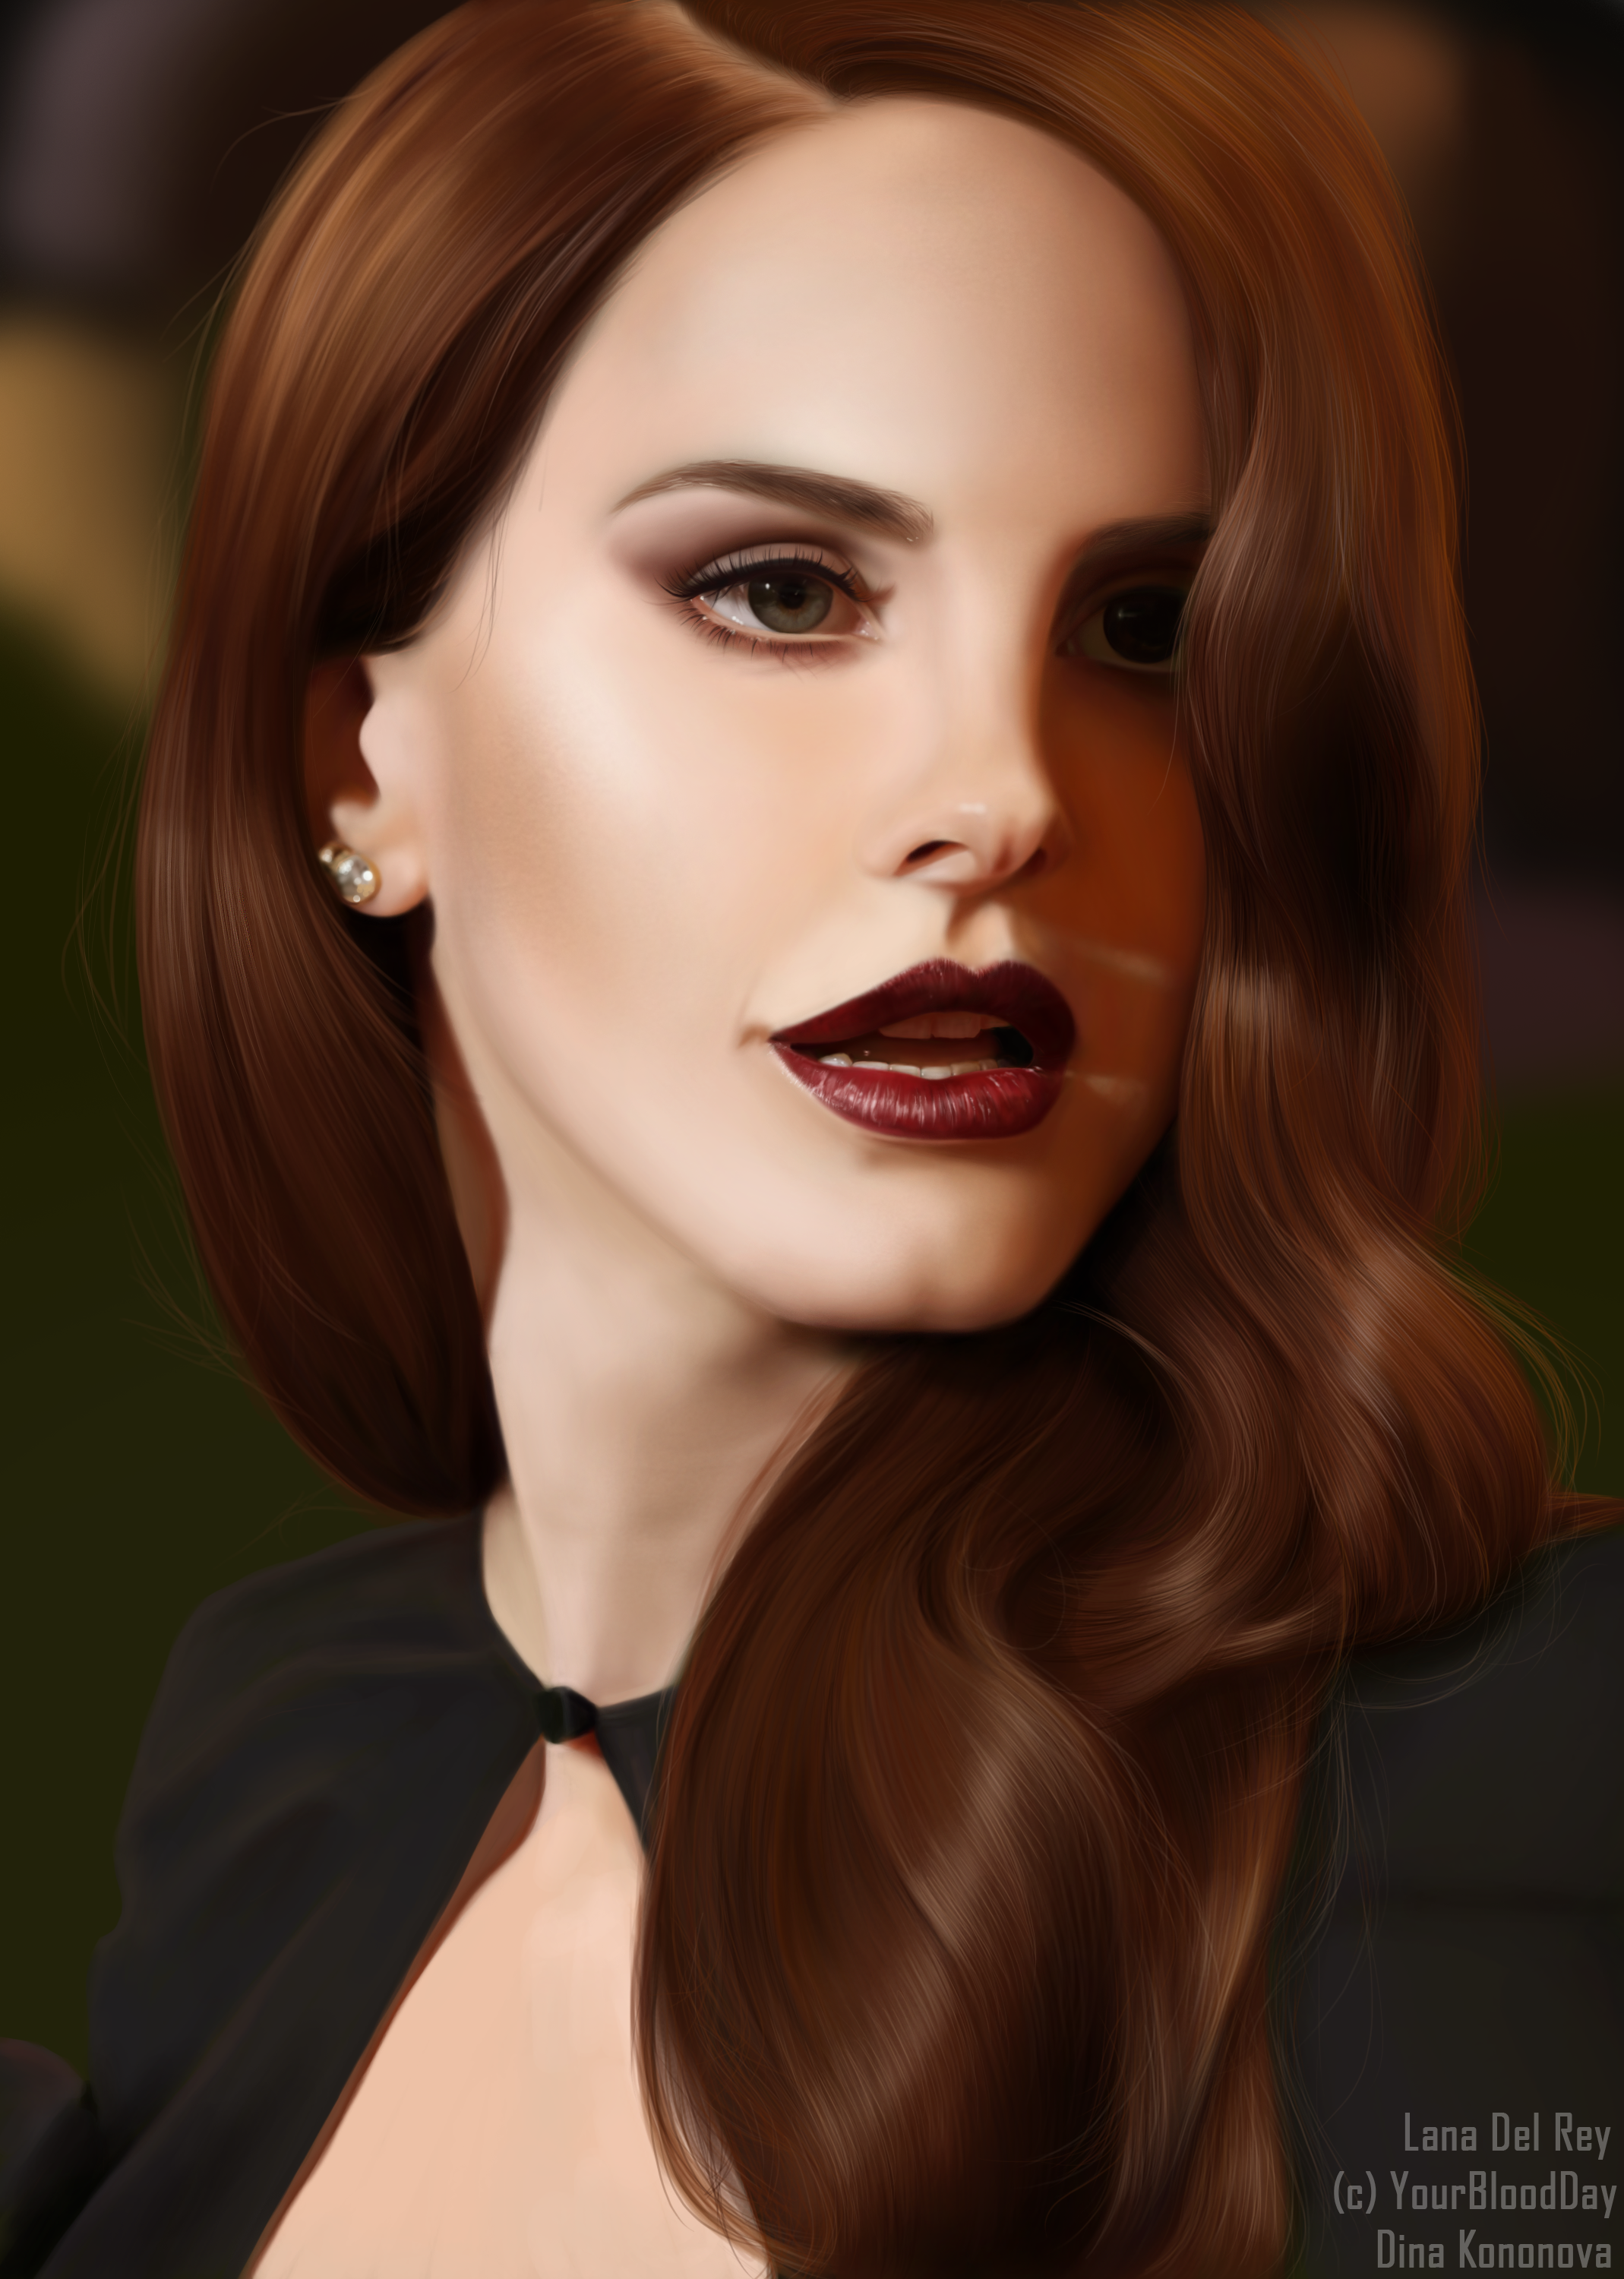 Lana Del Rey by YourBloodDay